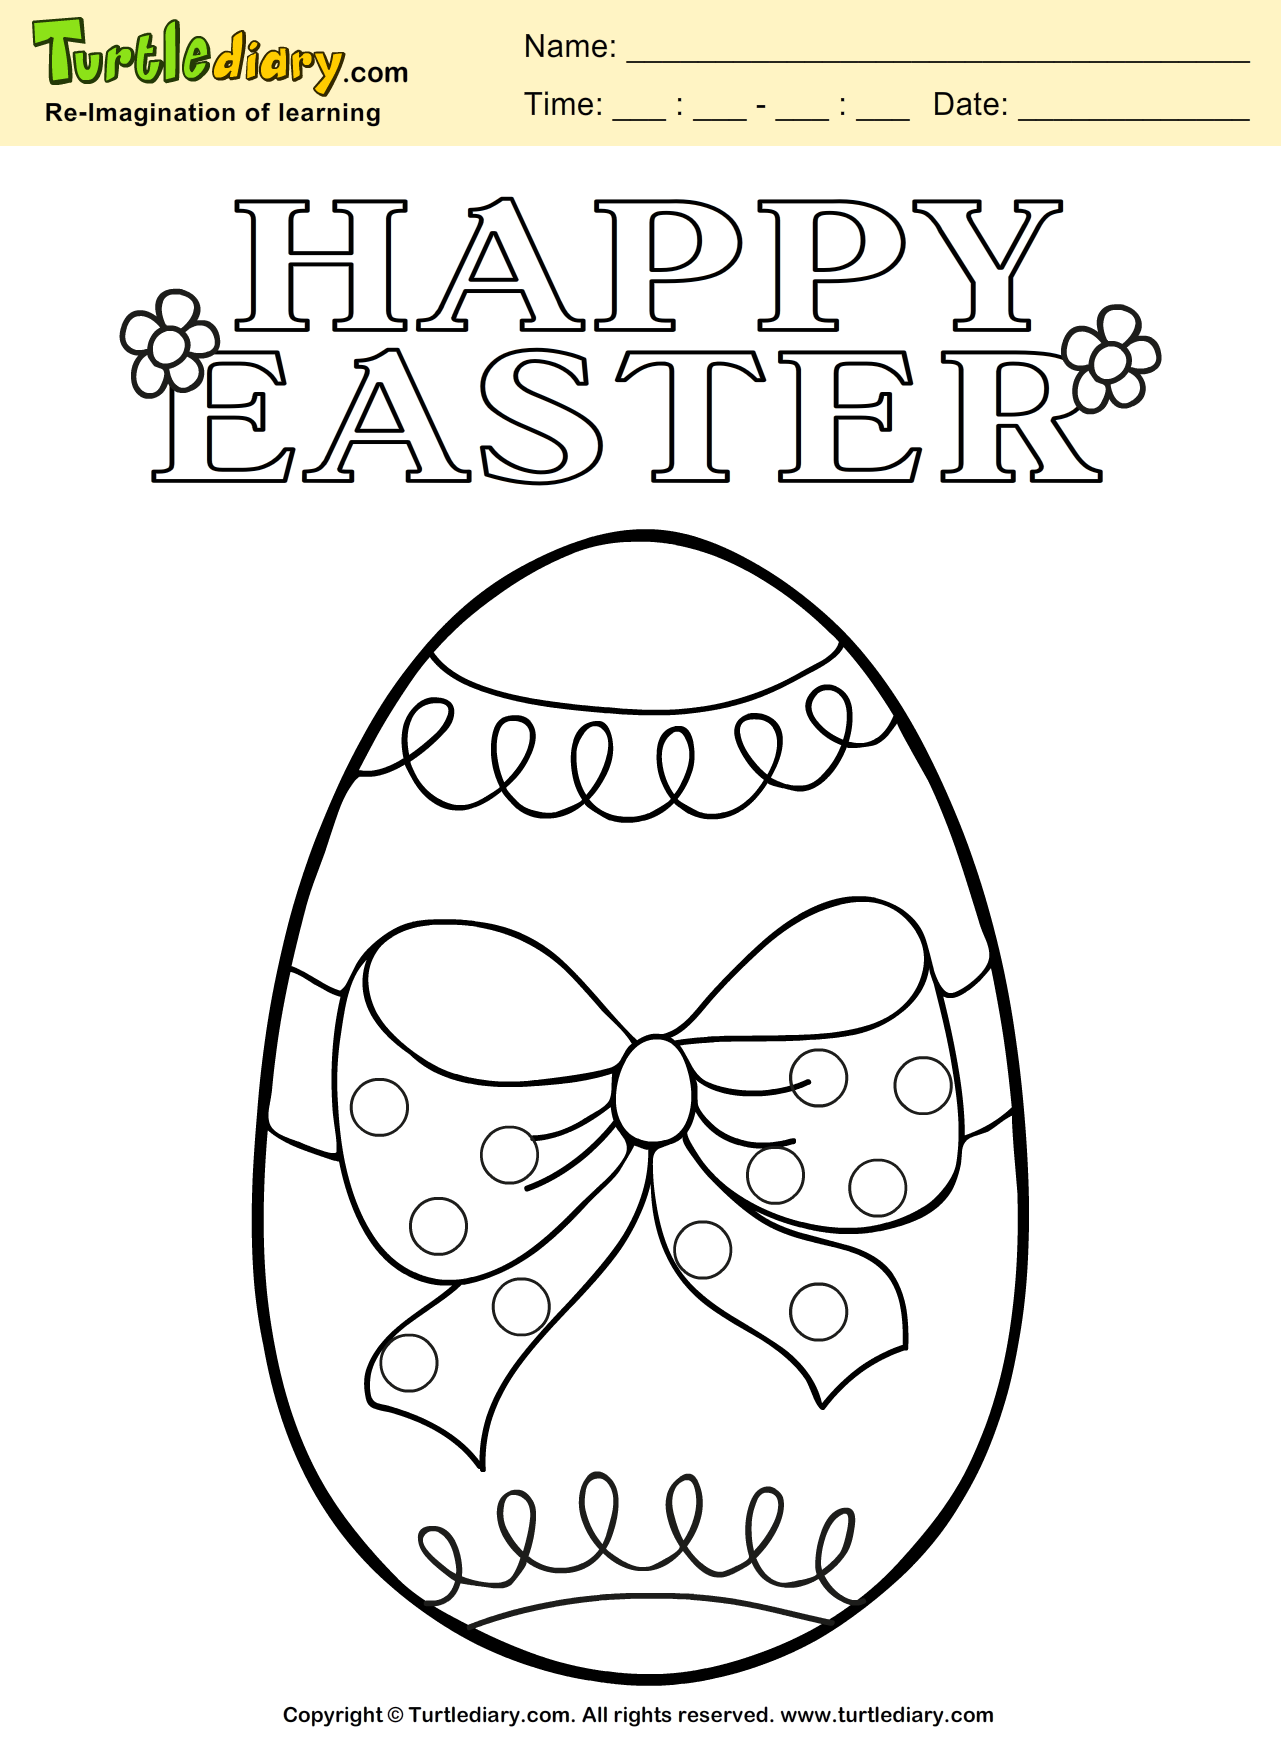 Easter Egg Coloring Sheet | Turtle Diary